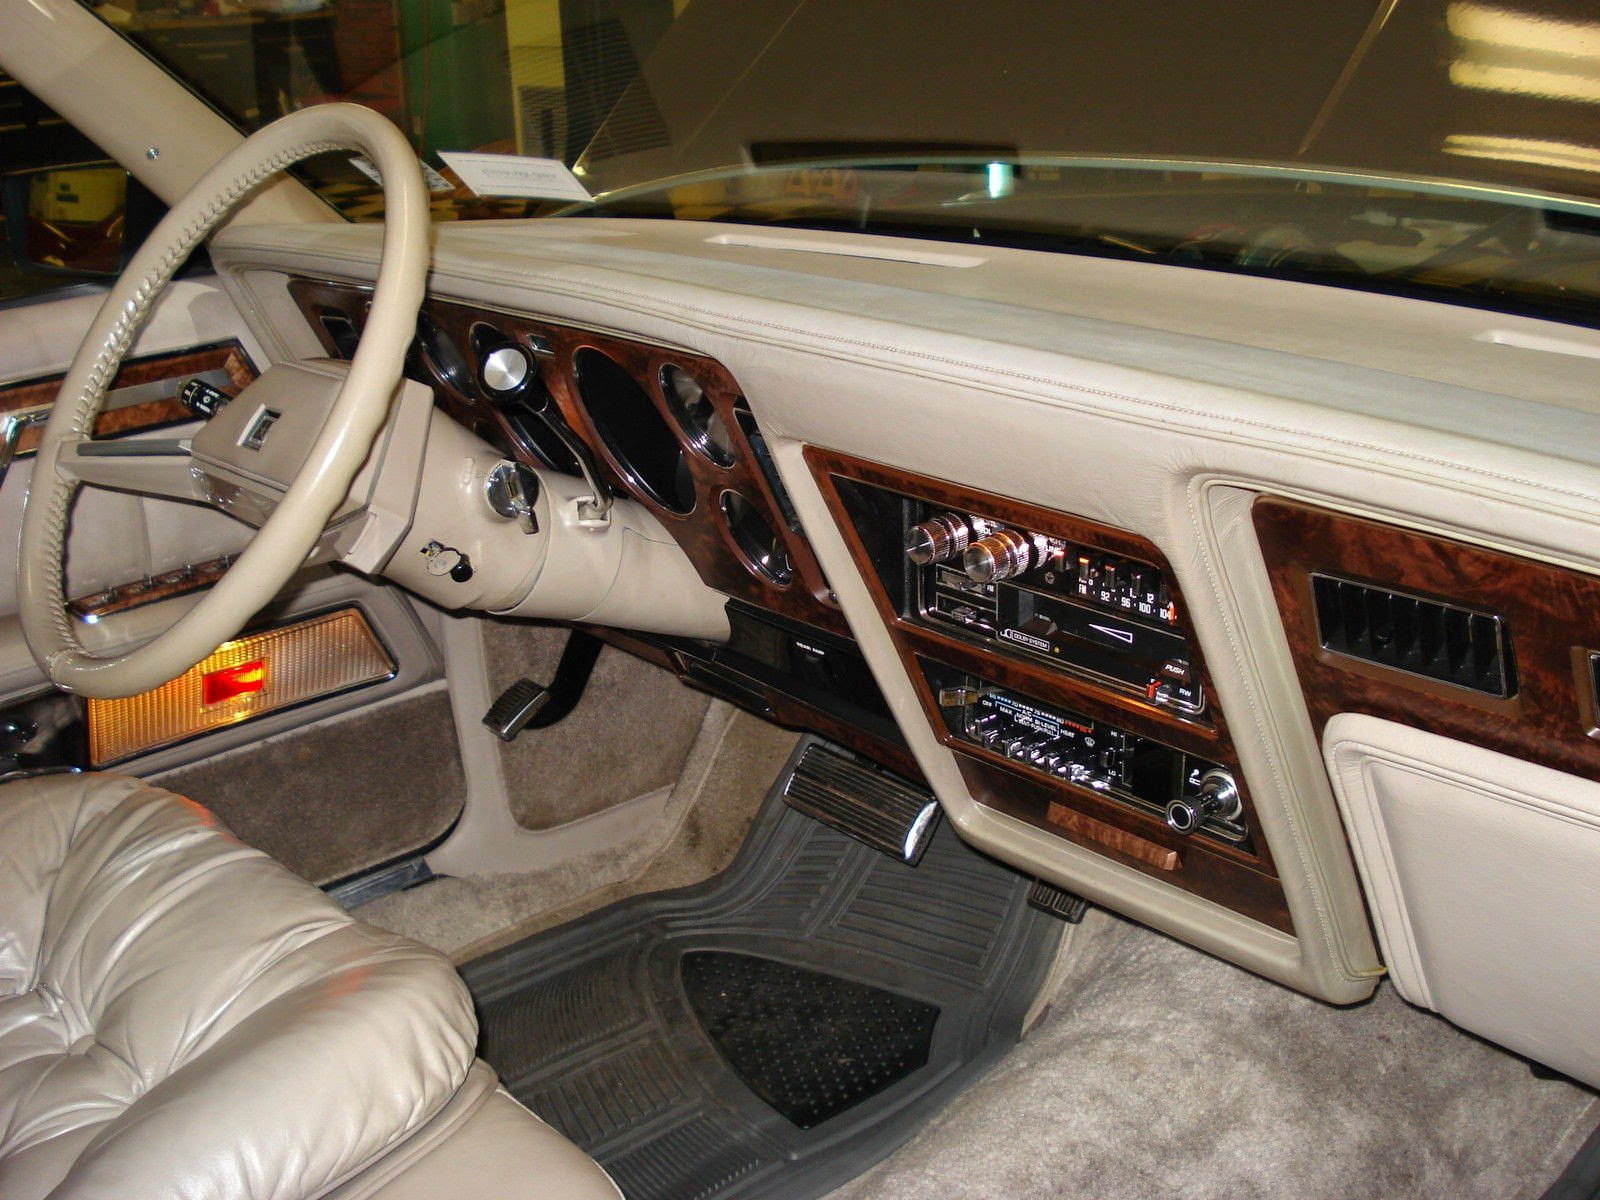 All American Classic Cars: 1981 Chrysler New Yorker Fifth